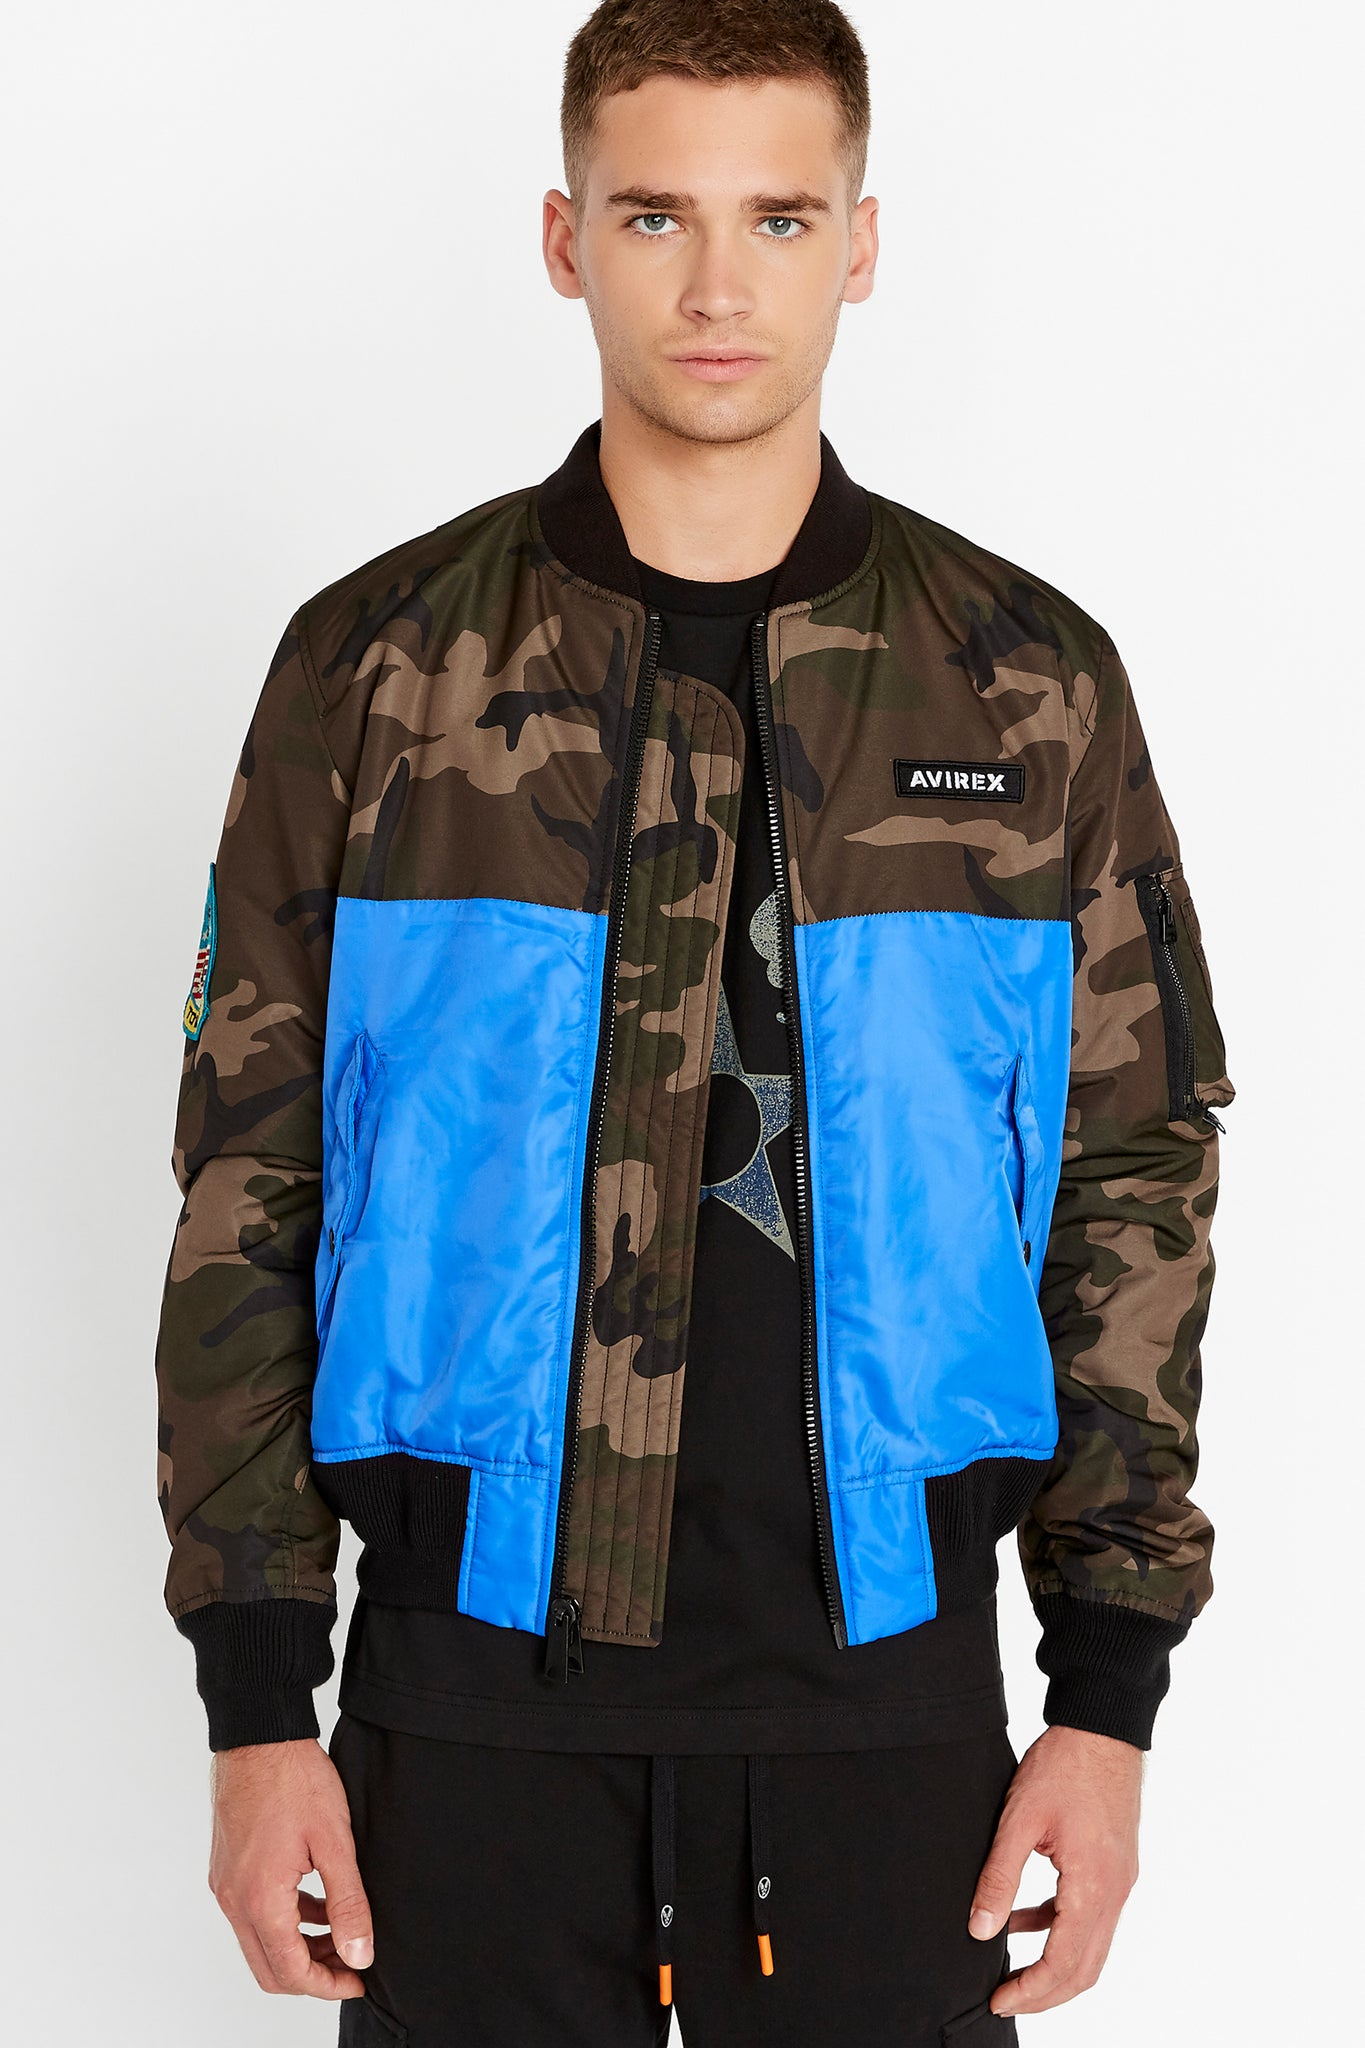 Front view of men wearing an open royal blue bomber jacket with camo print on the chest and sleeve, Avirex logo patch on the left chest and two side flap pockets and one utility pocket on left sleeve